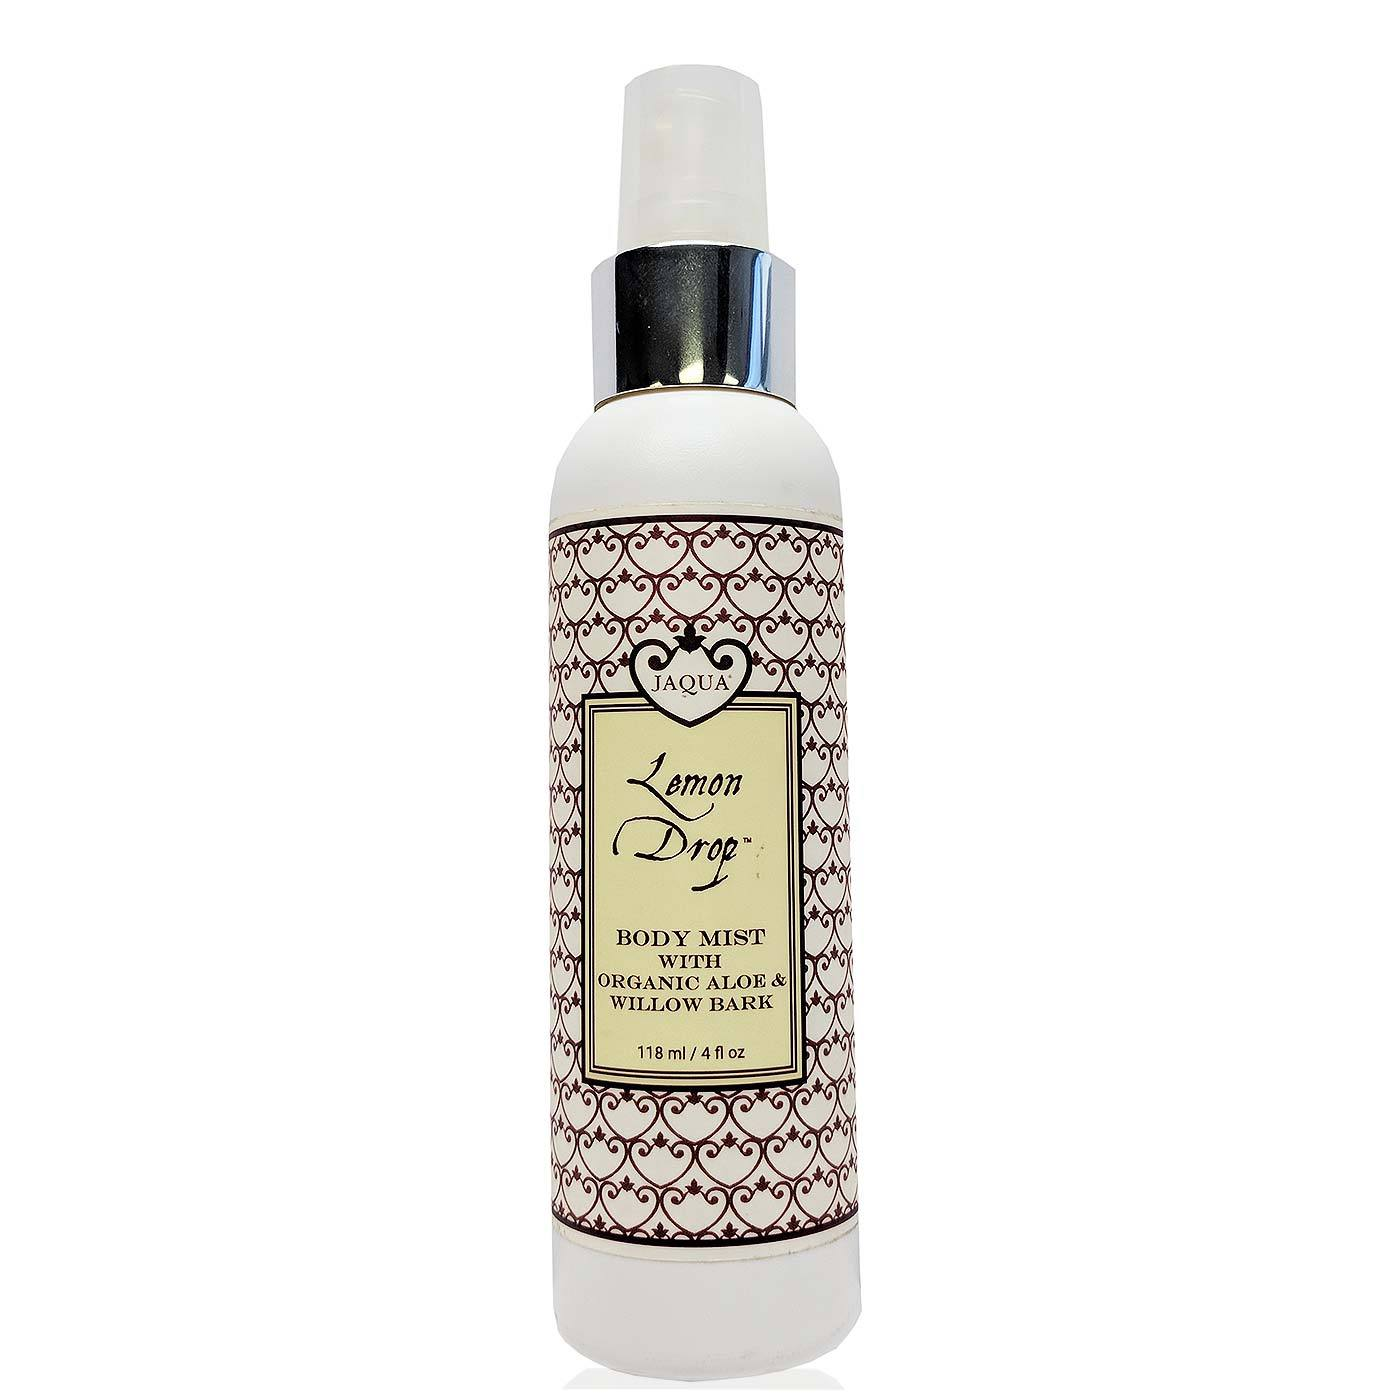 Lemon Drop Hydrating Body Mist With Organic Aloe & Willow Bark